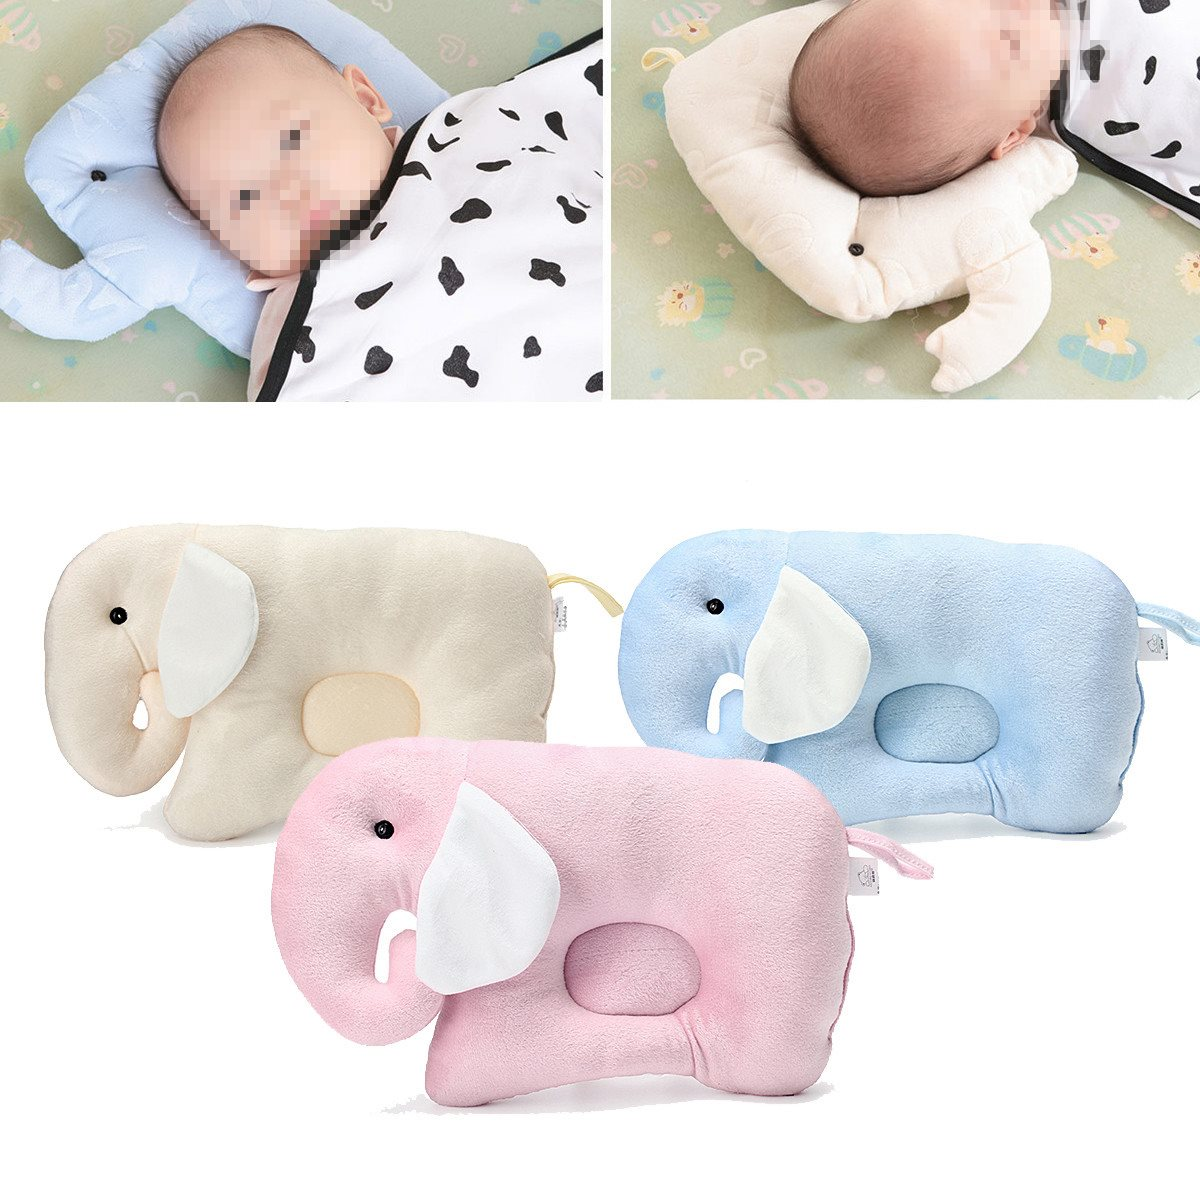 Horse shaped pillows for children - Baby Infant Newborn Head Positioner Pillow Flat Head Prevent Anti Roll Sleep Cushion Shaping Pillow Cute